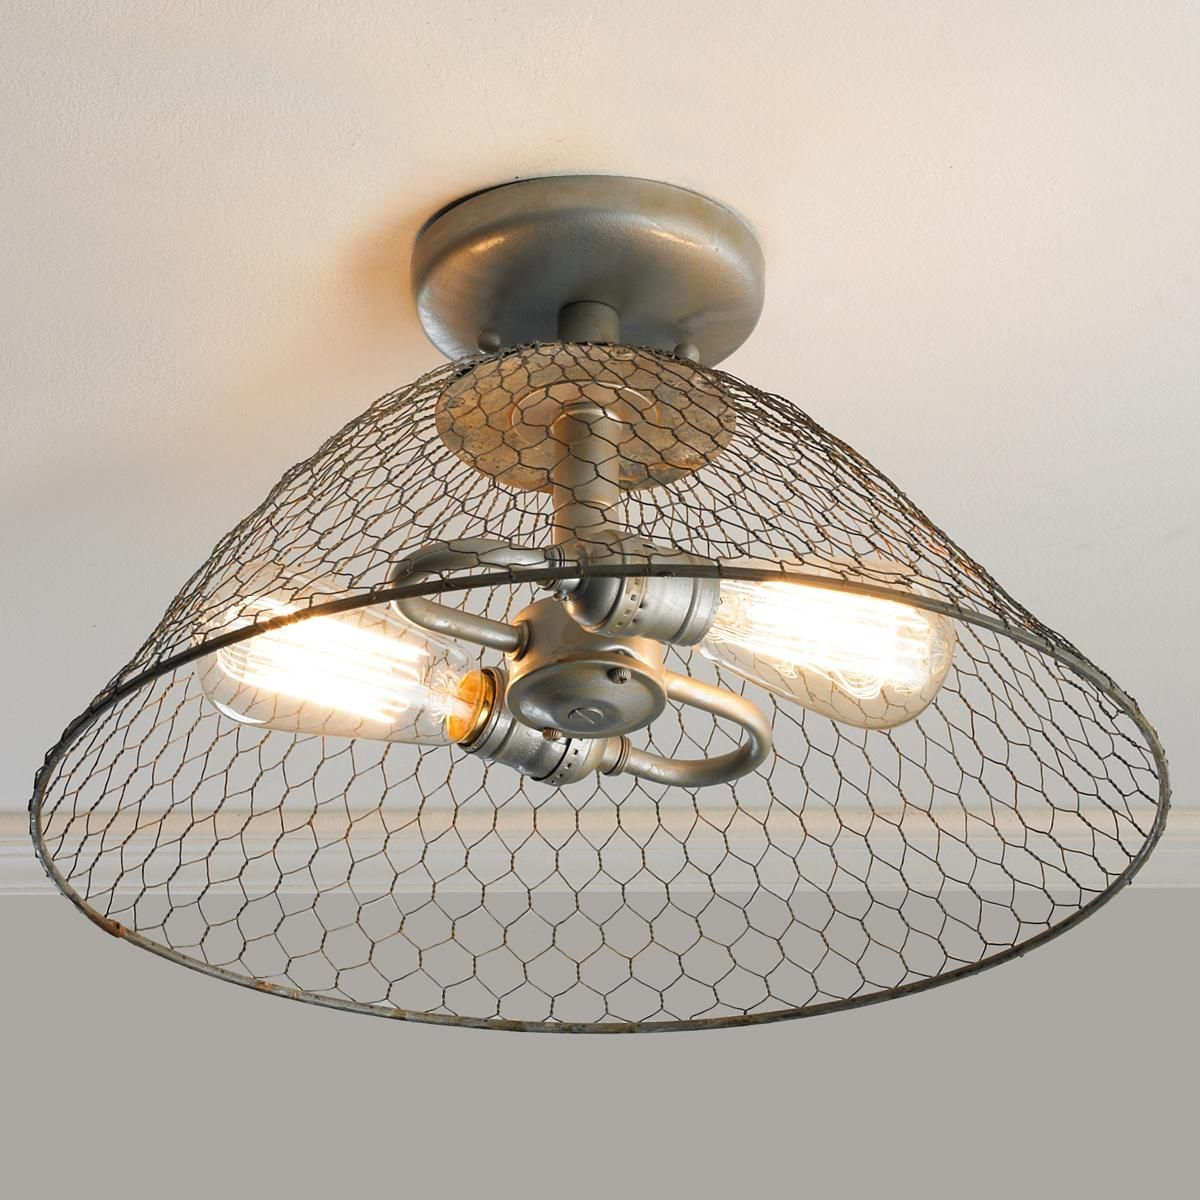 Rustic Chicken Wire Dome Ceiling Light Ceiling Lights For Or - Kitchen dome ceiling lighting